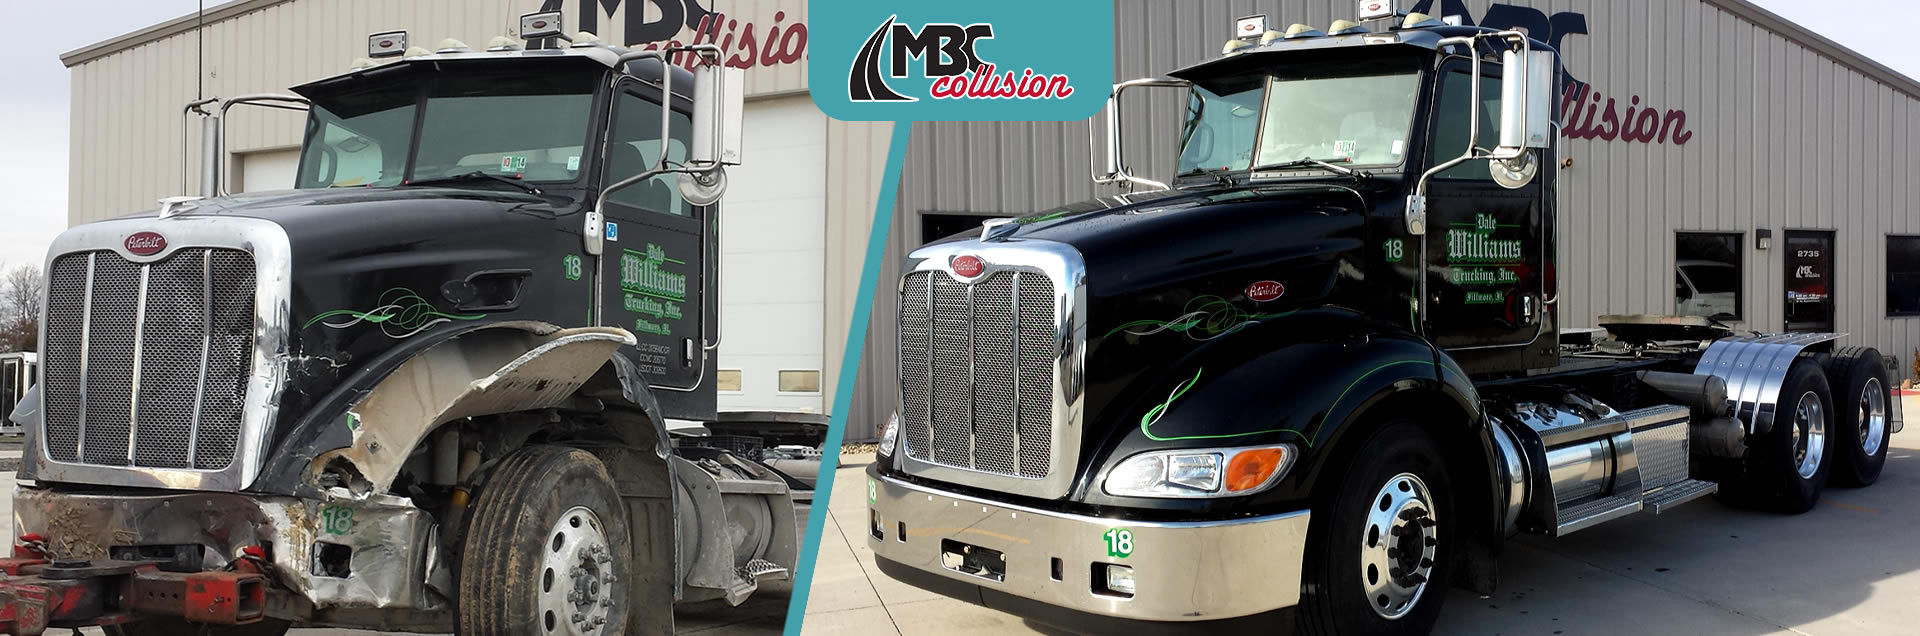 Services at MBC Collision, truck & body paint repair shop in Springfield IL